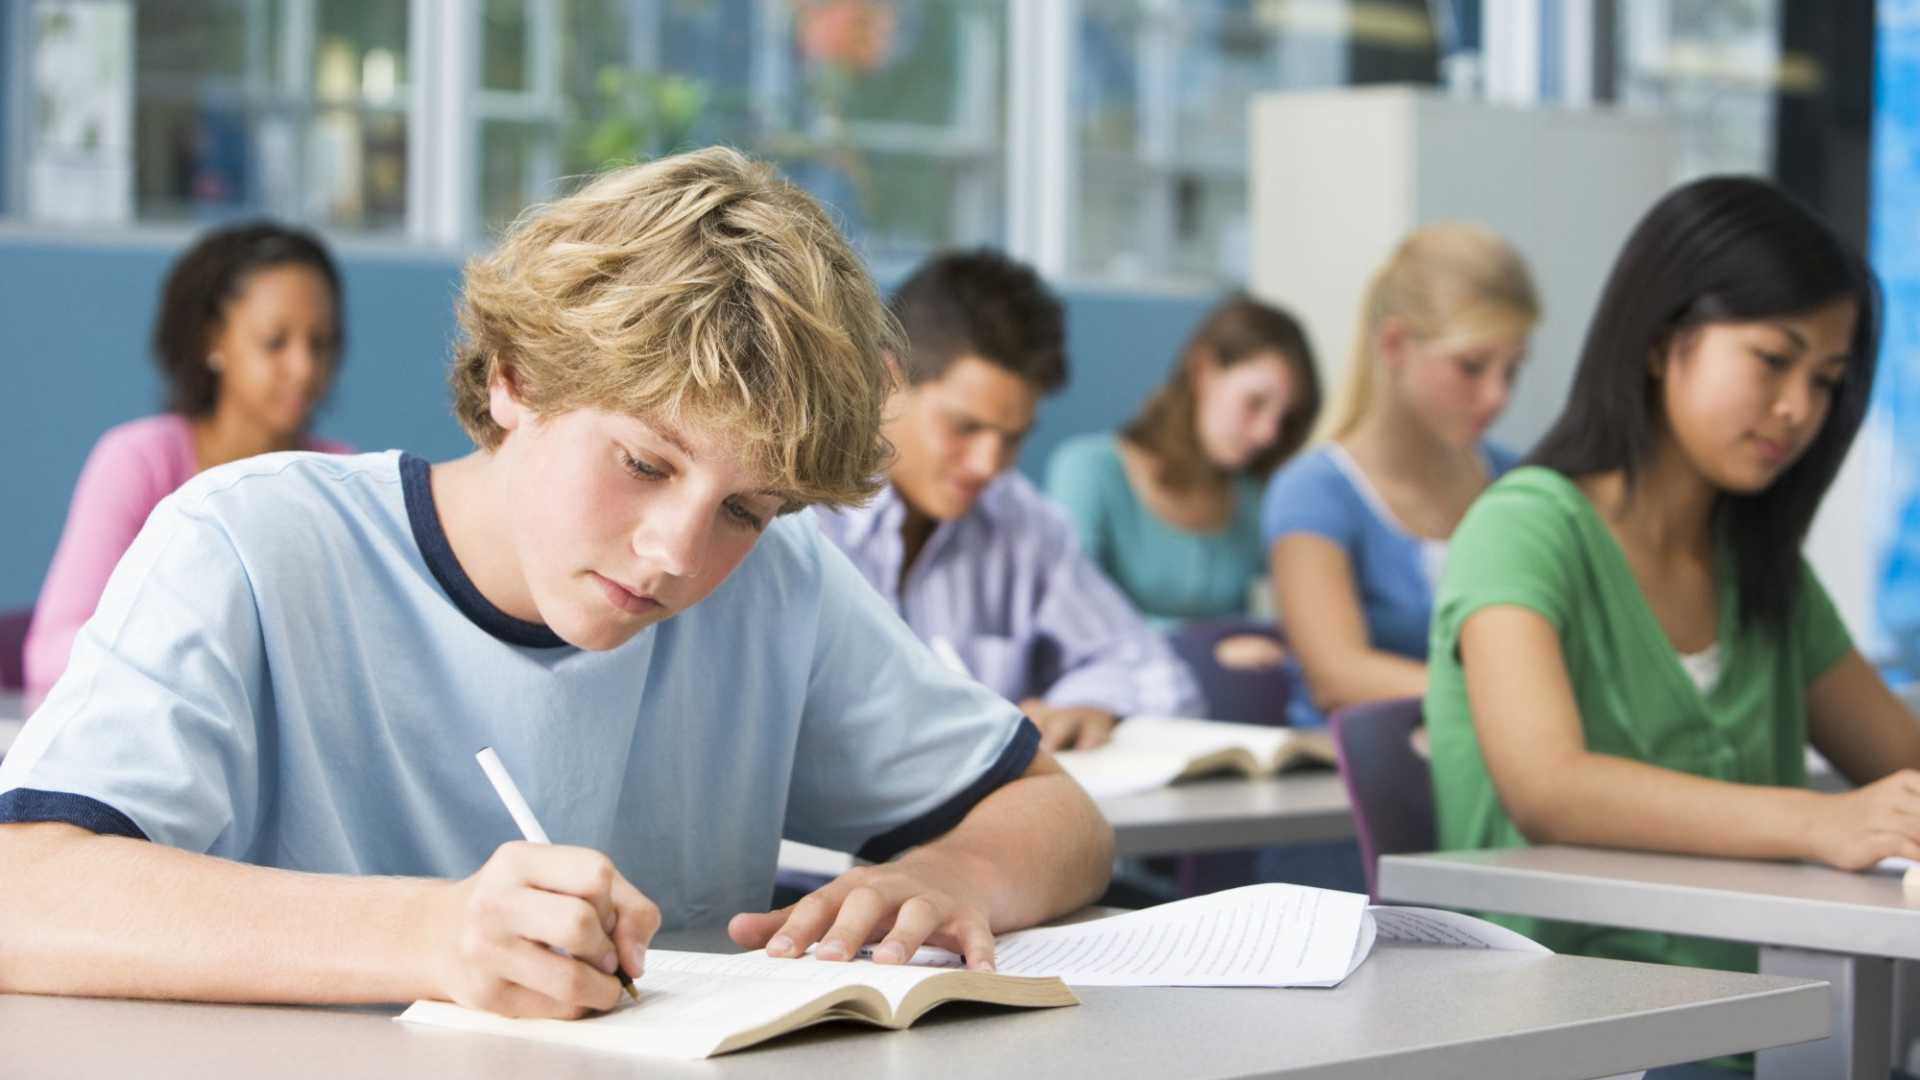 Study Suggests You're More Likely to Be a Disrupter If You Got Lower Grades in School